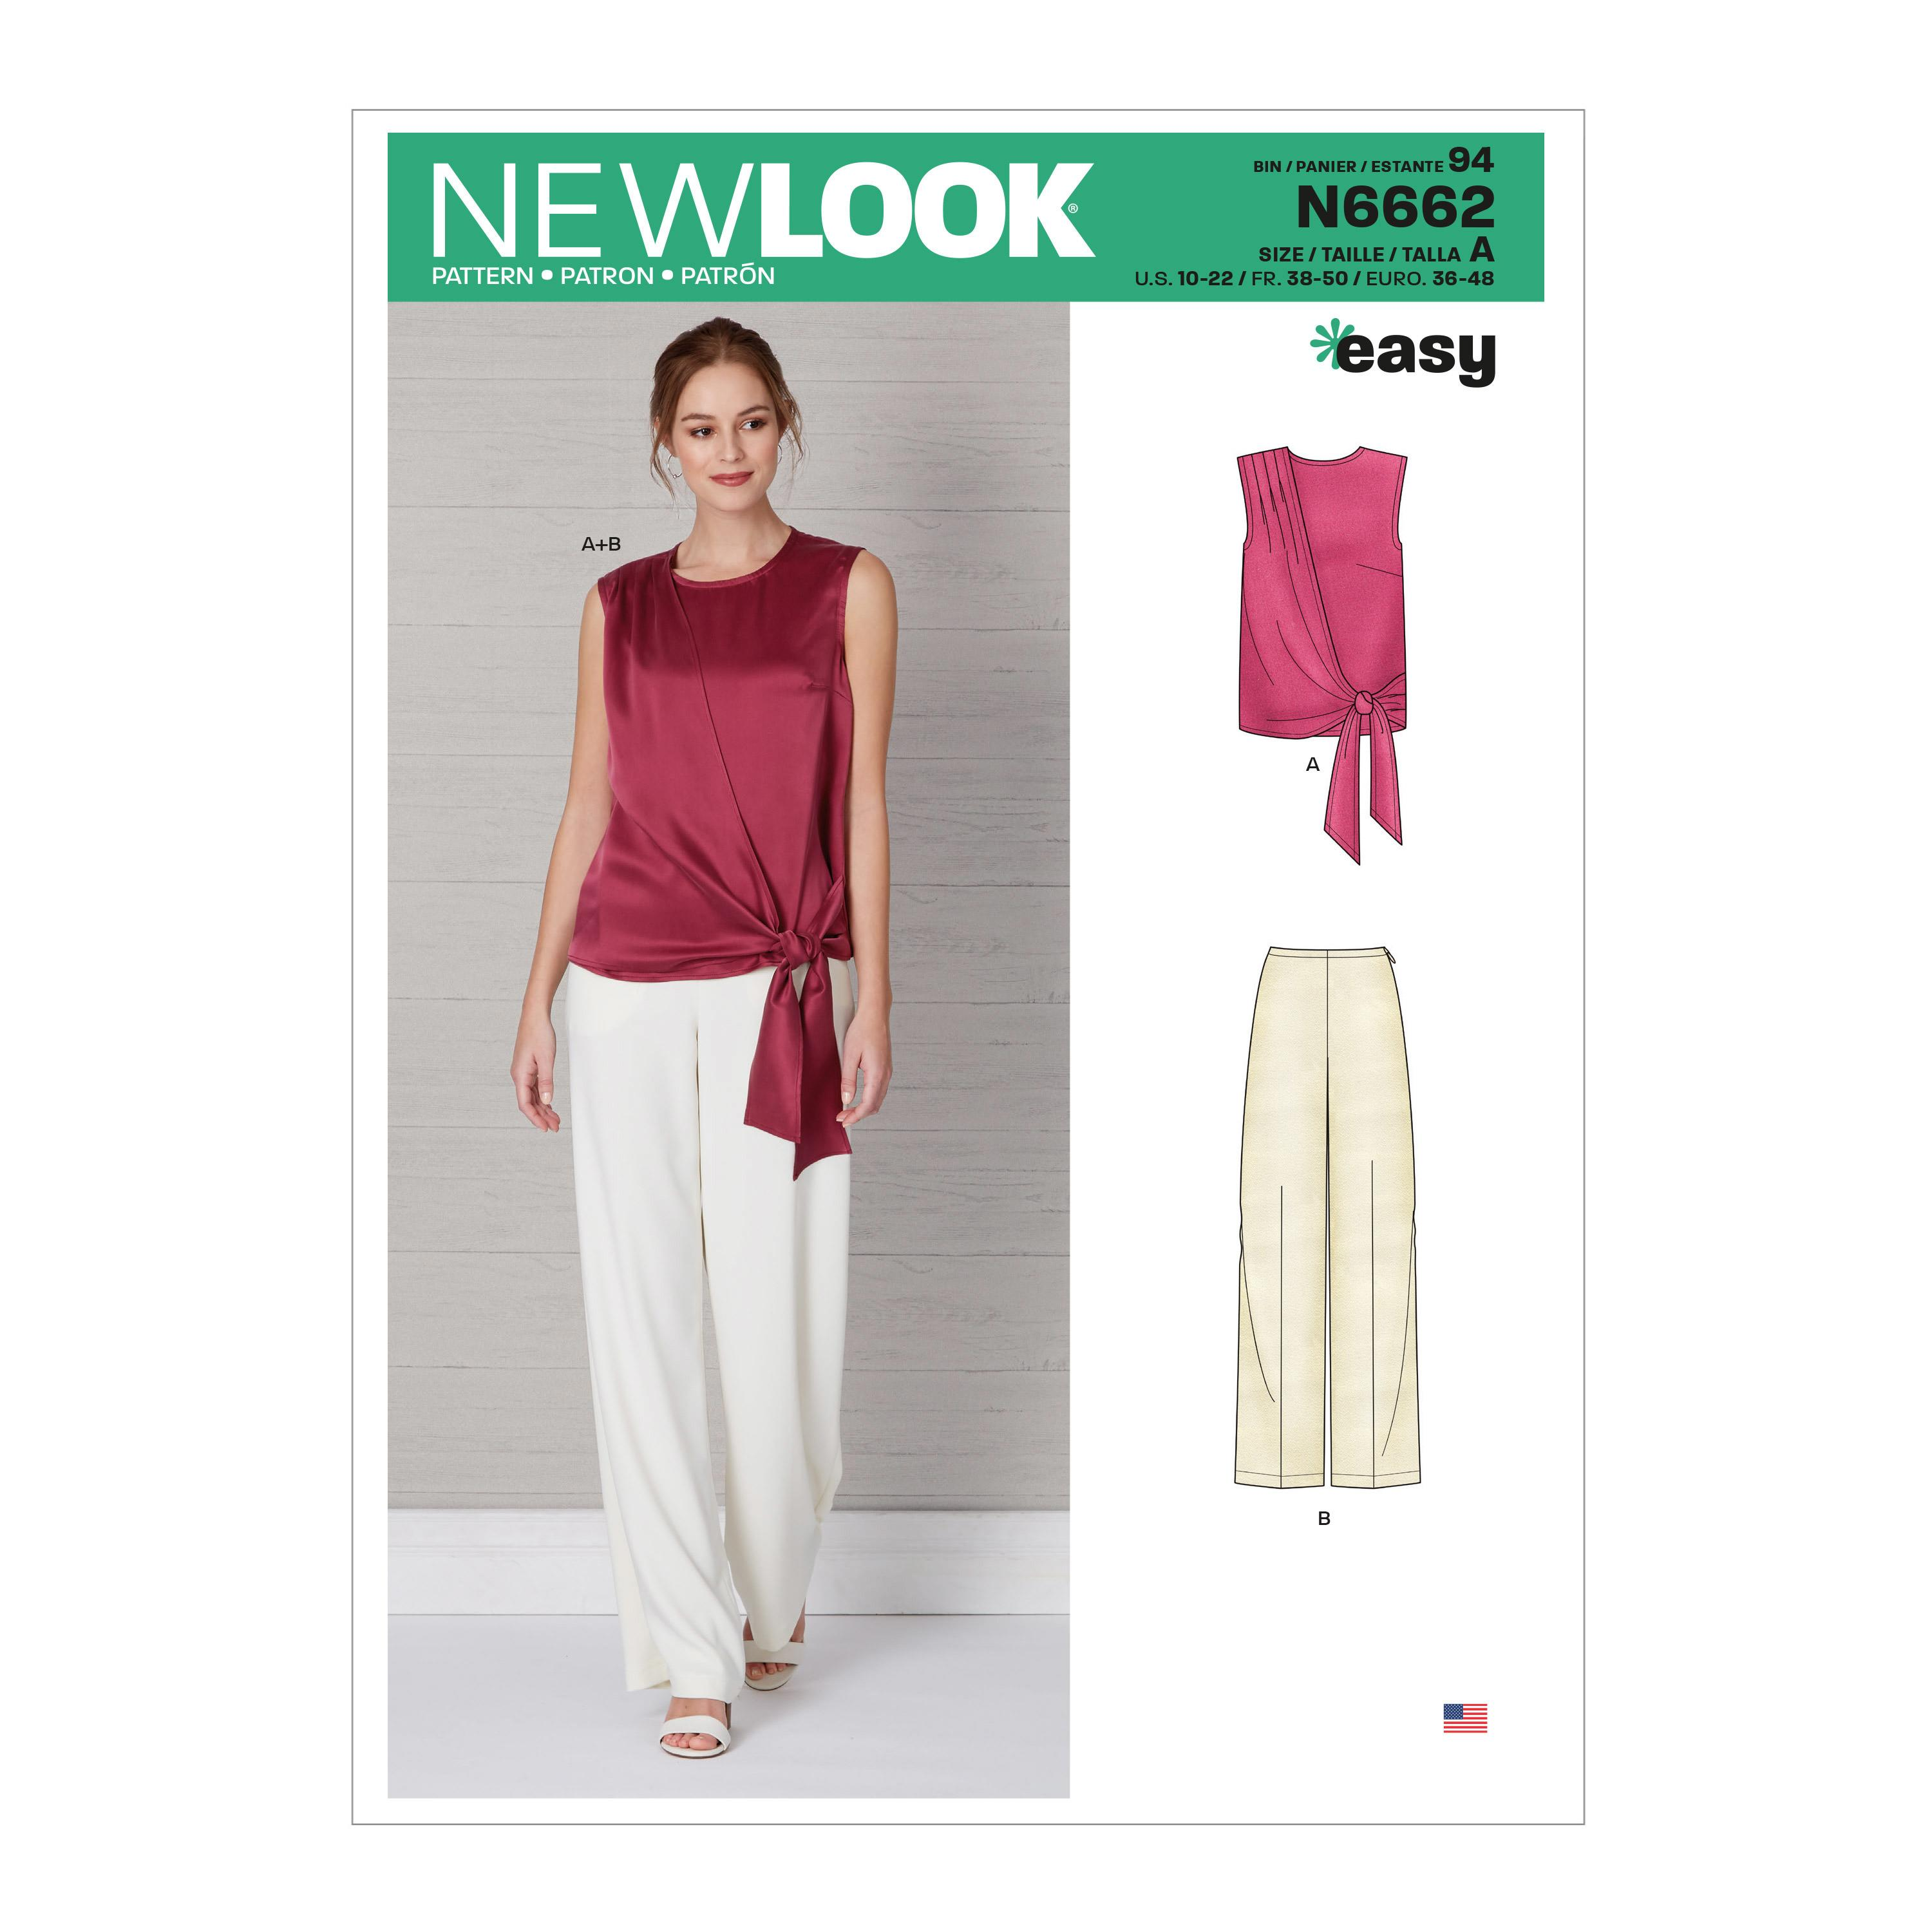 New Look Sewing Pattern N6662 Misses' Drape Top & Wide Leg Pants